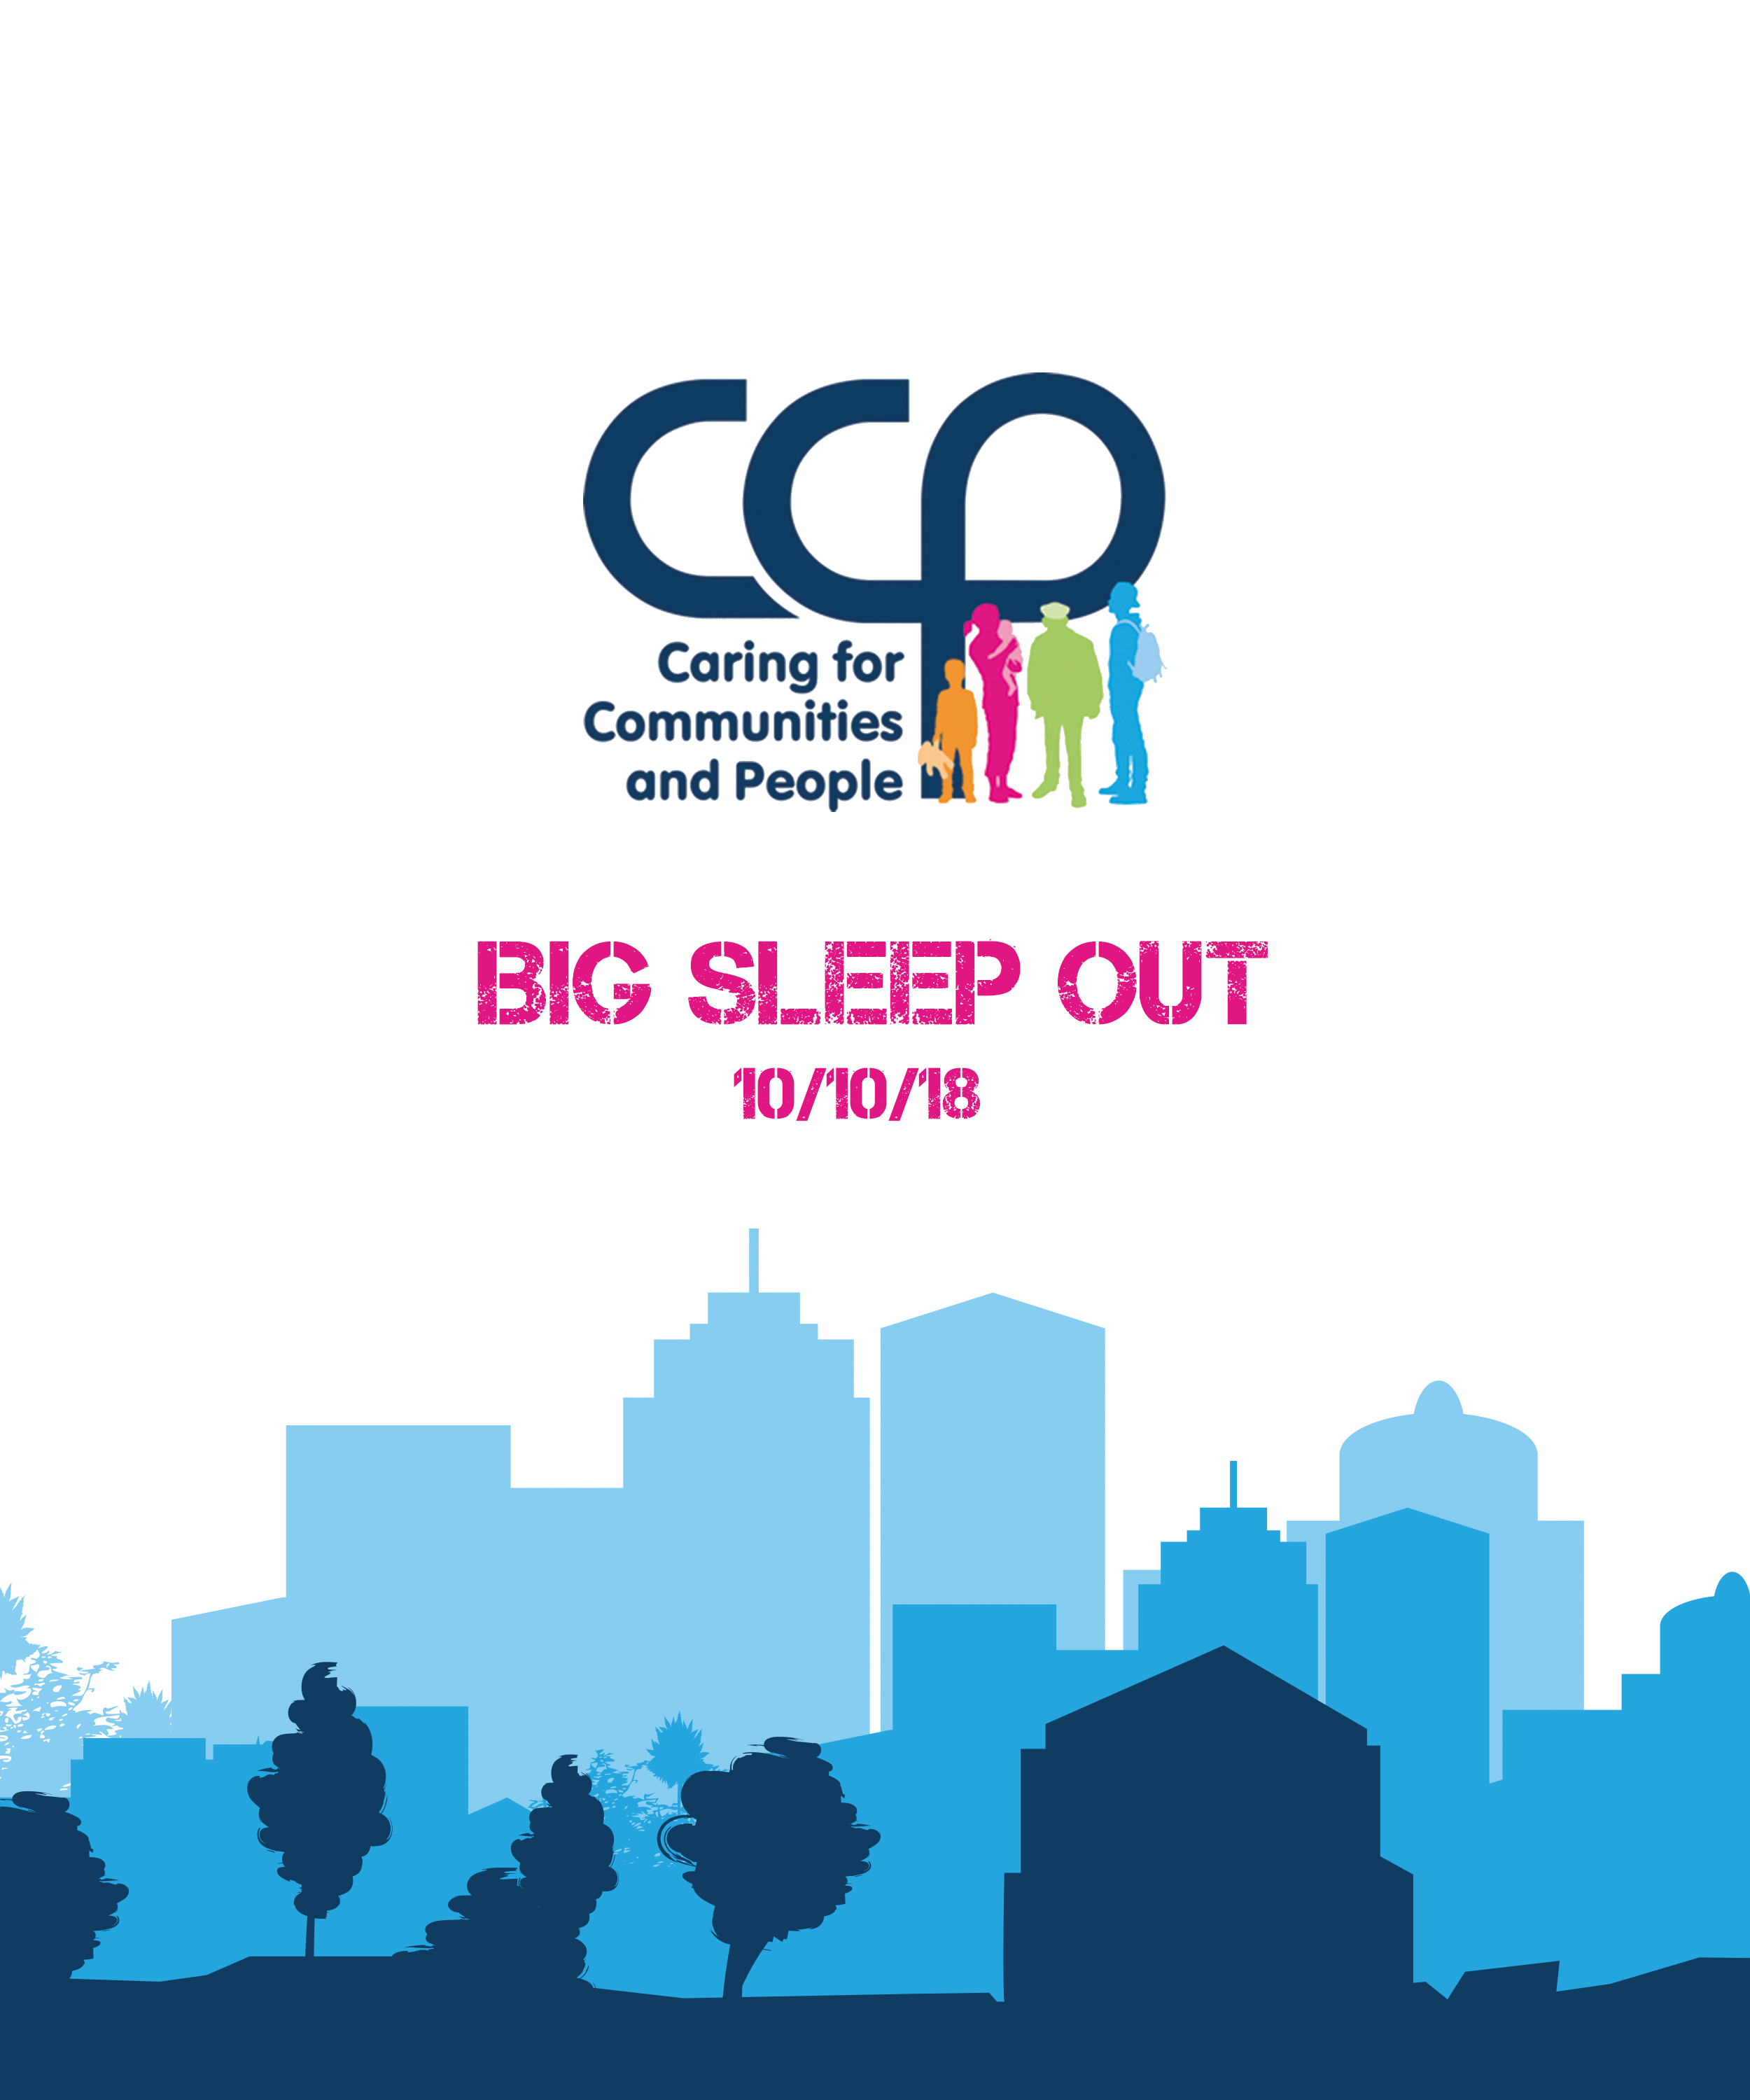 CCP Big Sleep Out